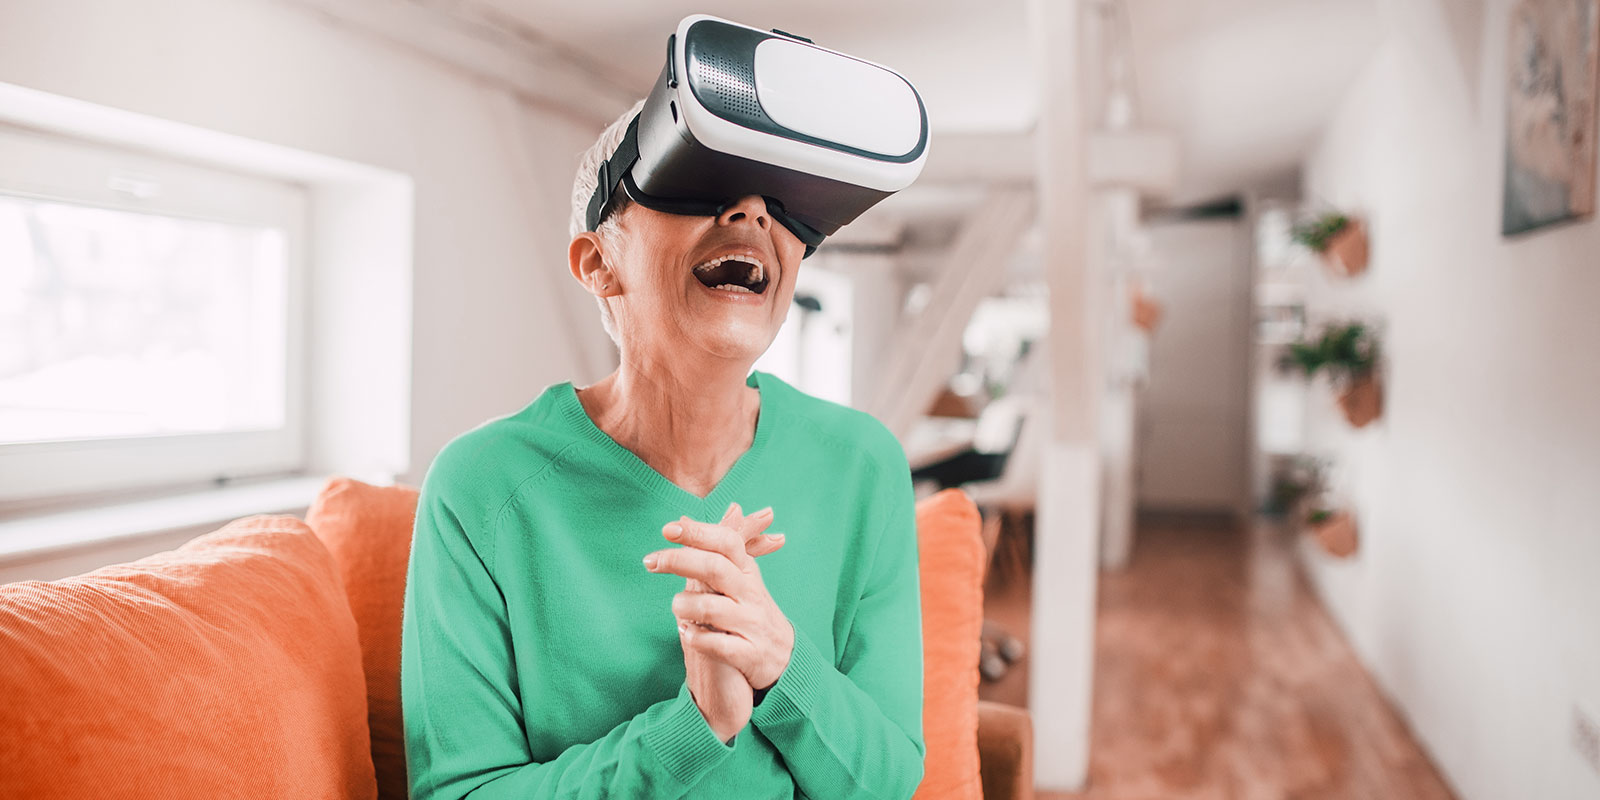 elderly woman wearing virtual reality headset and smiling